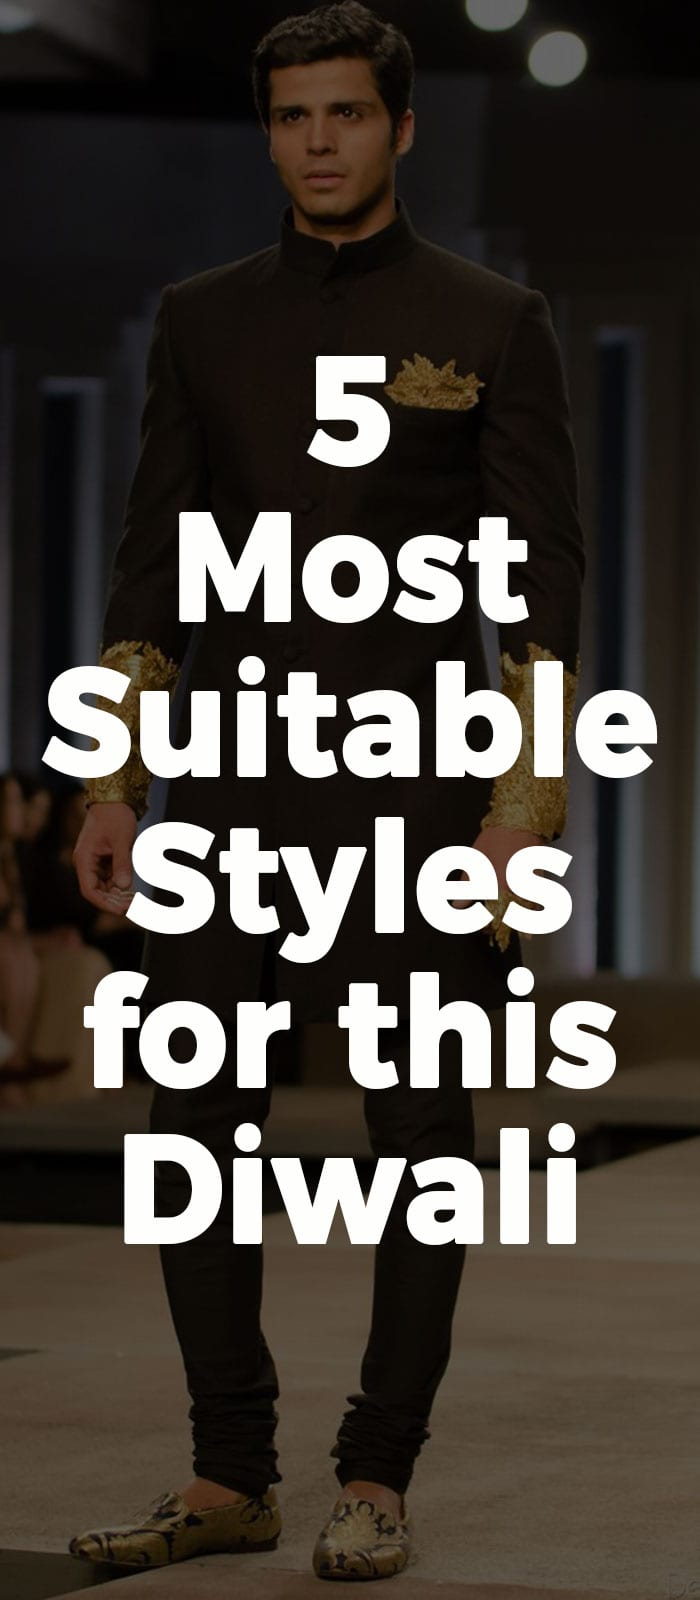 5 Most Suitable Styles for this Diwali